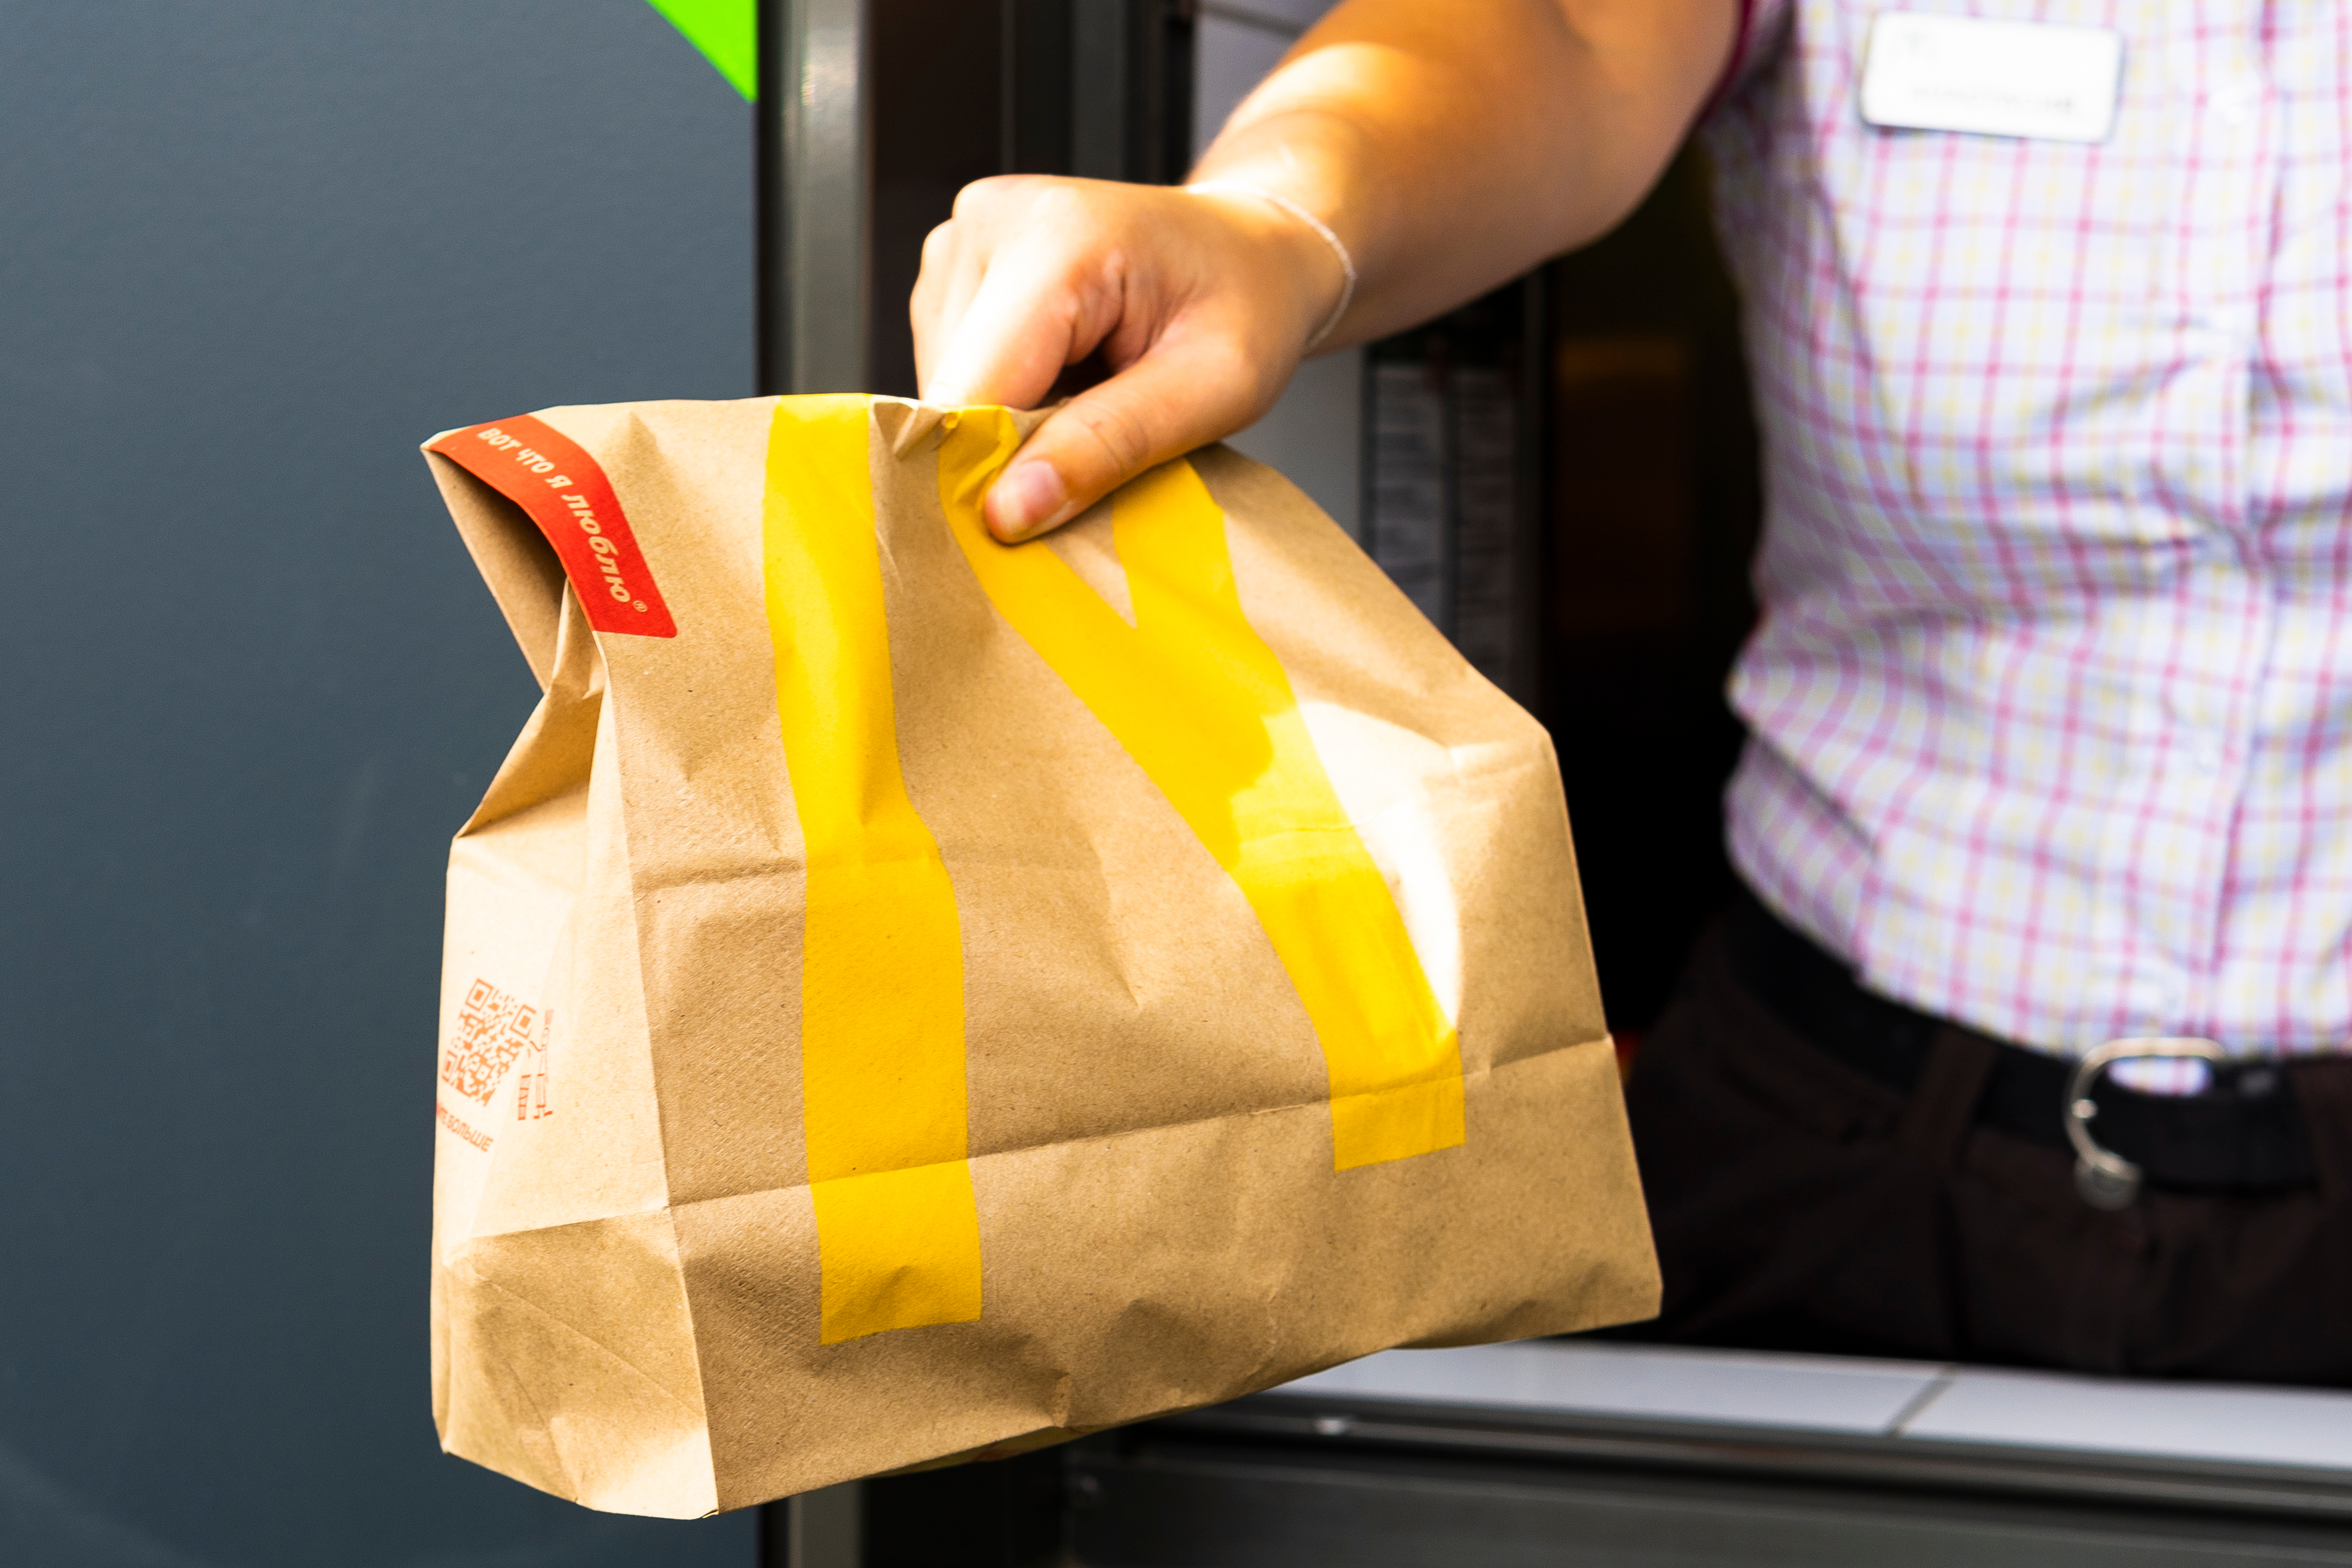 The torso of a McDonald's employee in a pink checkered shirt, passing a bag of food labeled with McDonald's branding through the drive-thru window.